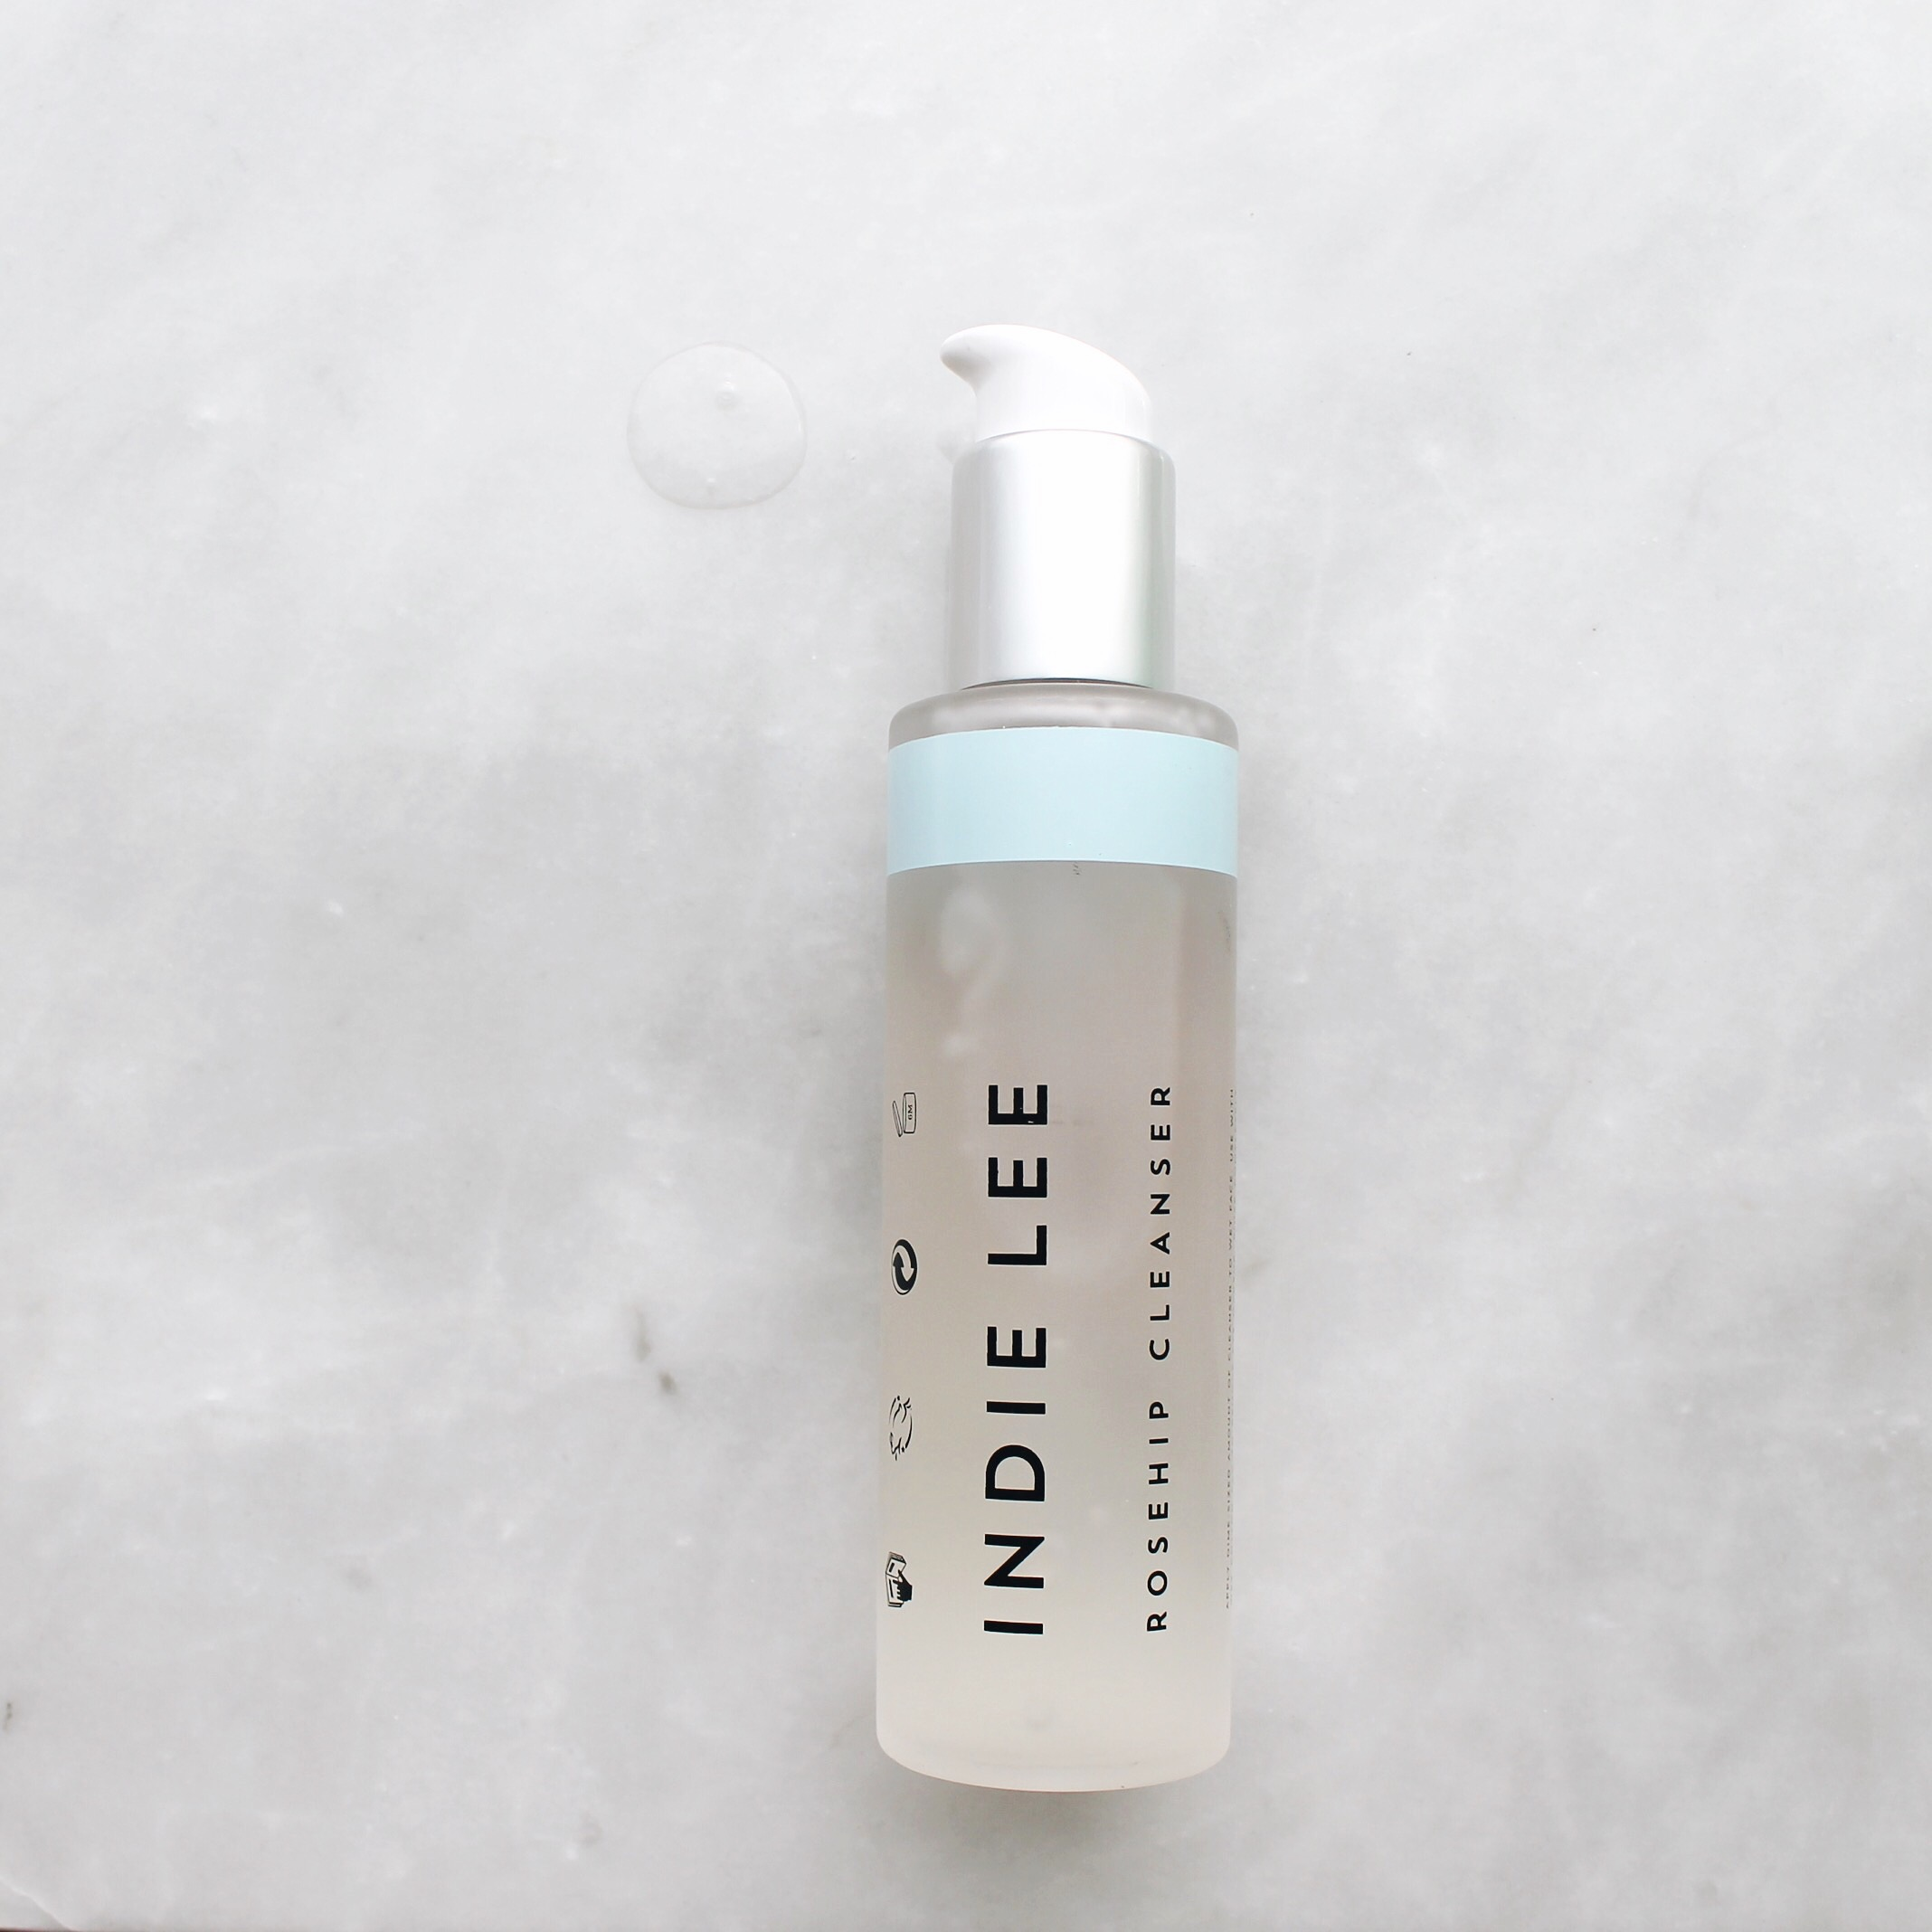 Indie Lee Rosehip Cleanser Review, Indie Lee, Rosehip Cleanser, Indie Lee Rosehip Cleanser, Brightening Cleanser, Indie Lee Brightening Cleanser, Natural Beauty, Natural Skincare, The Stell, The Stell New York